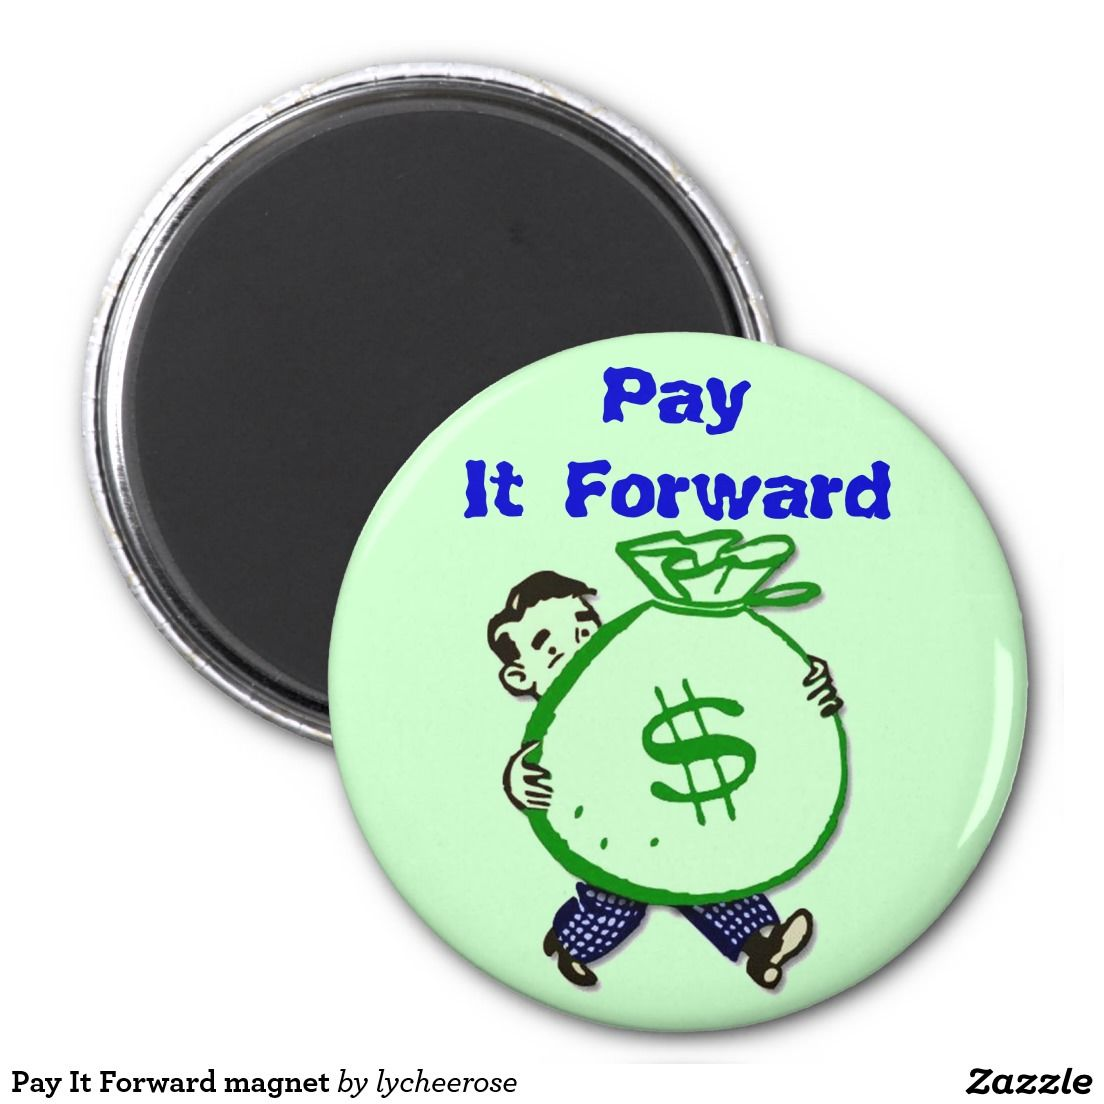 Pay It Forward magnet